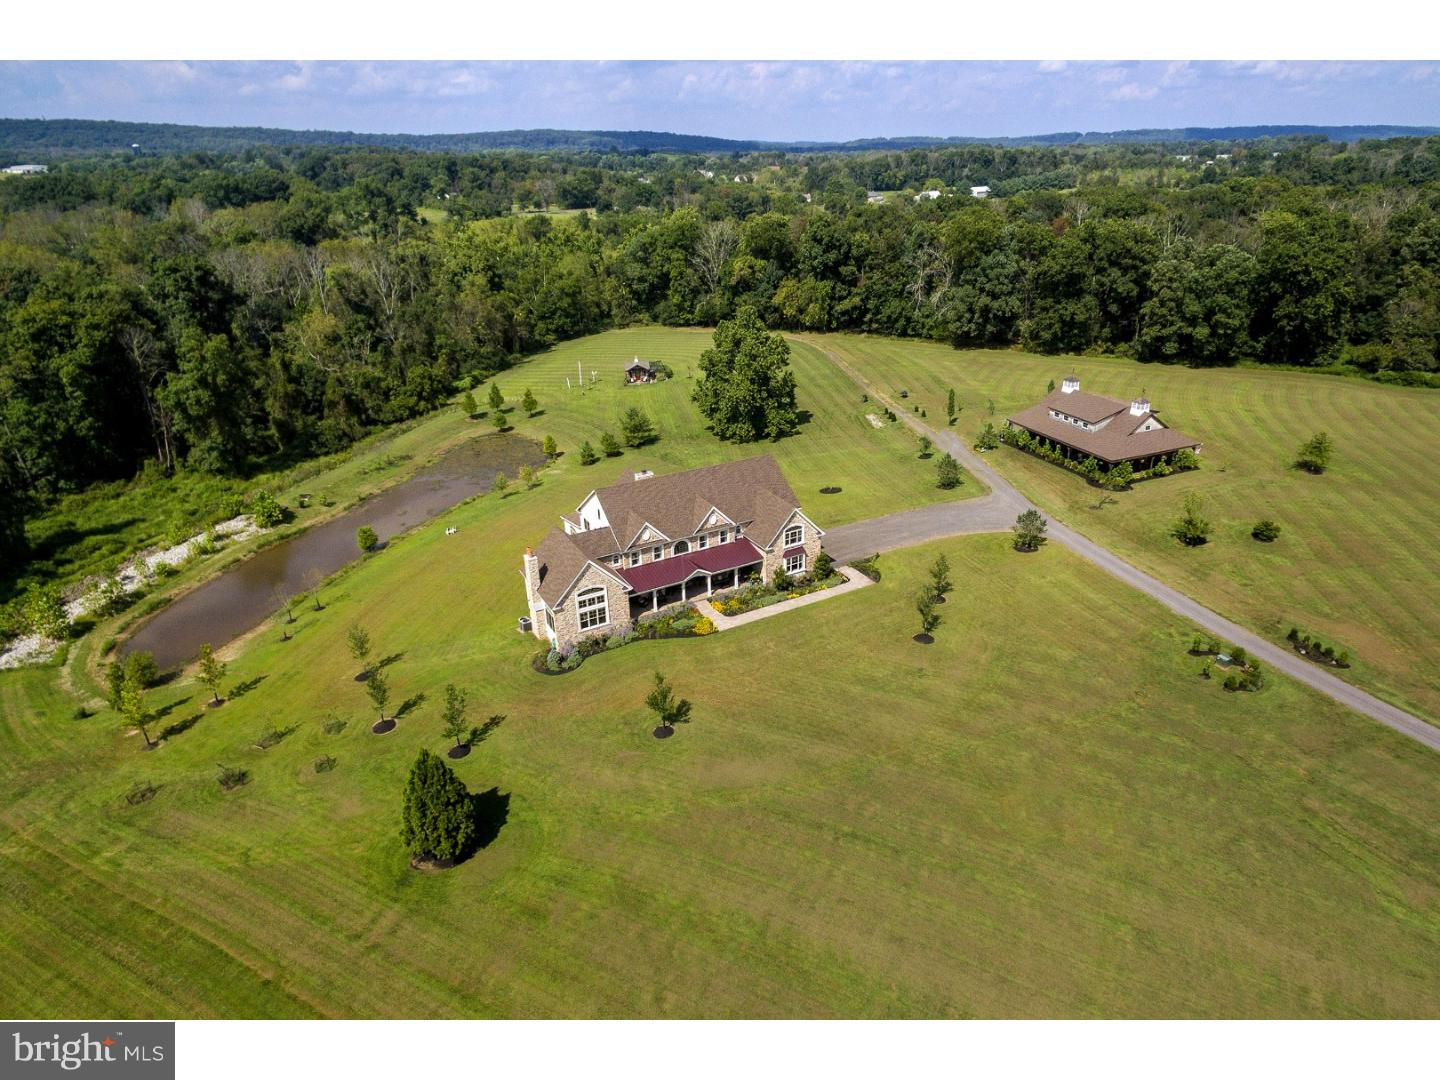 4344 TOWNSHIP LINE ROAD LOT 3, WYCOMBE, PA 18925